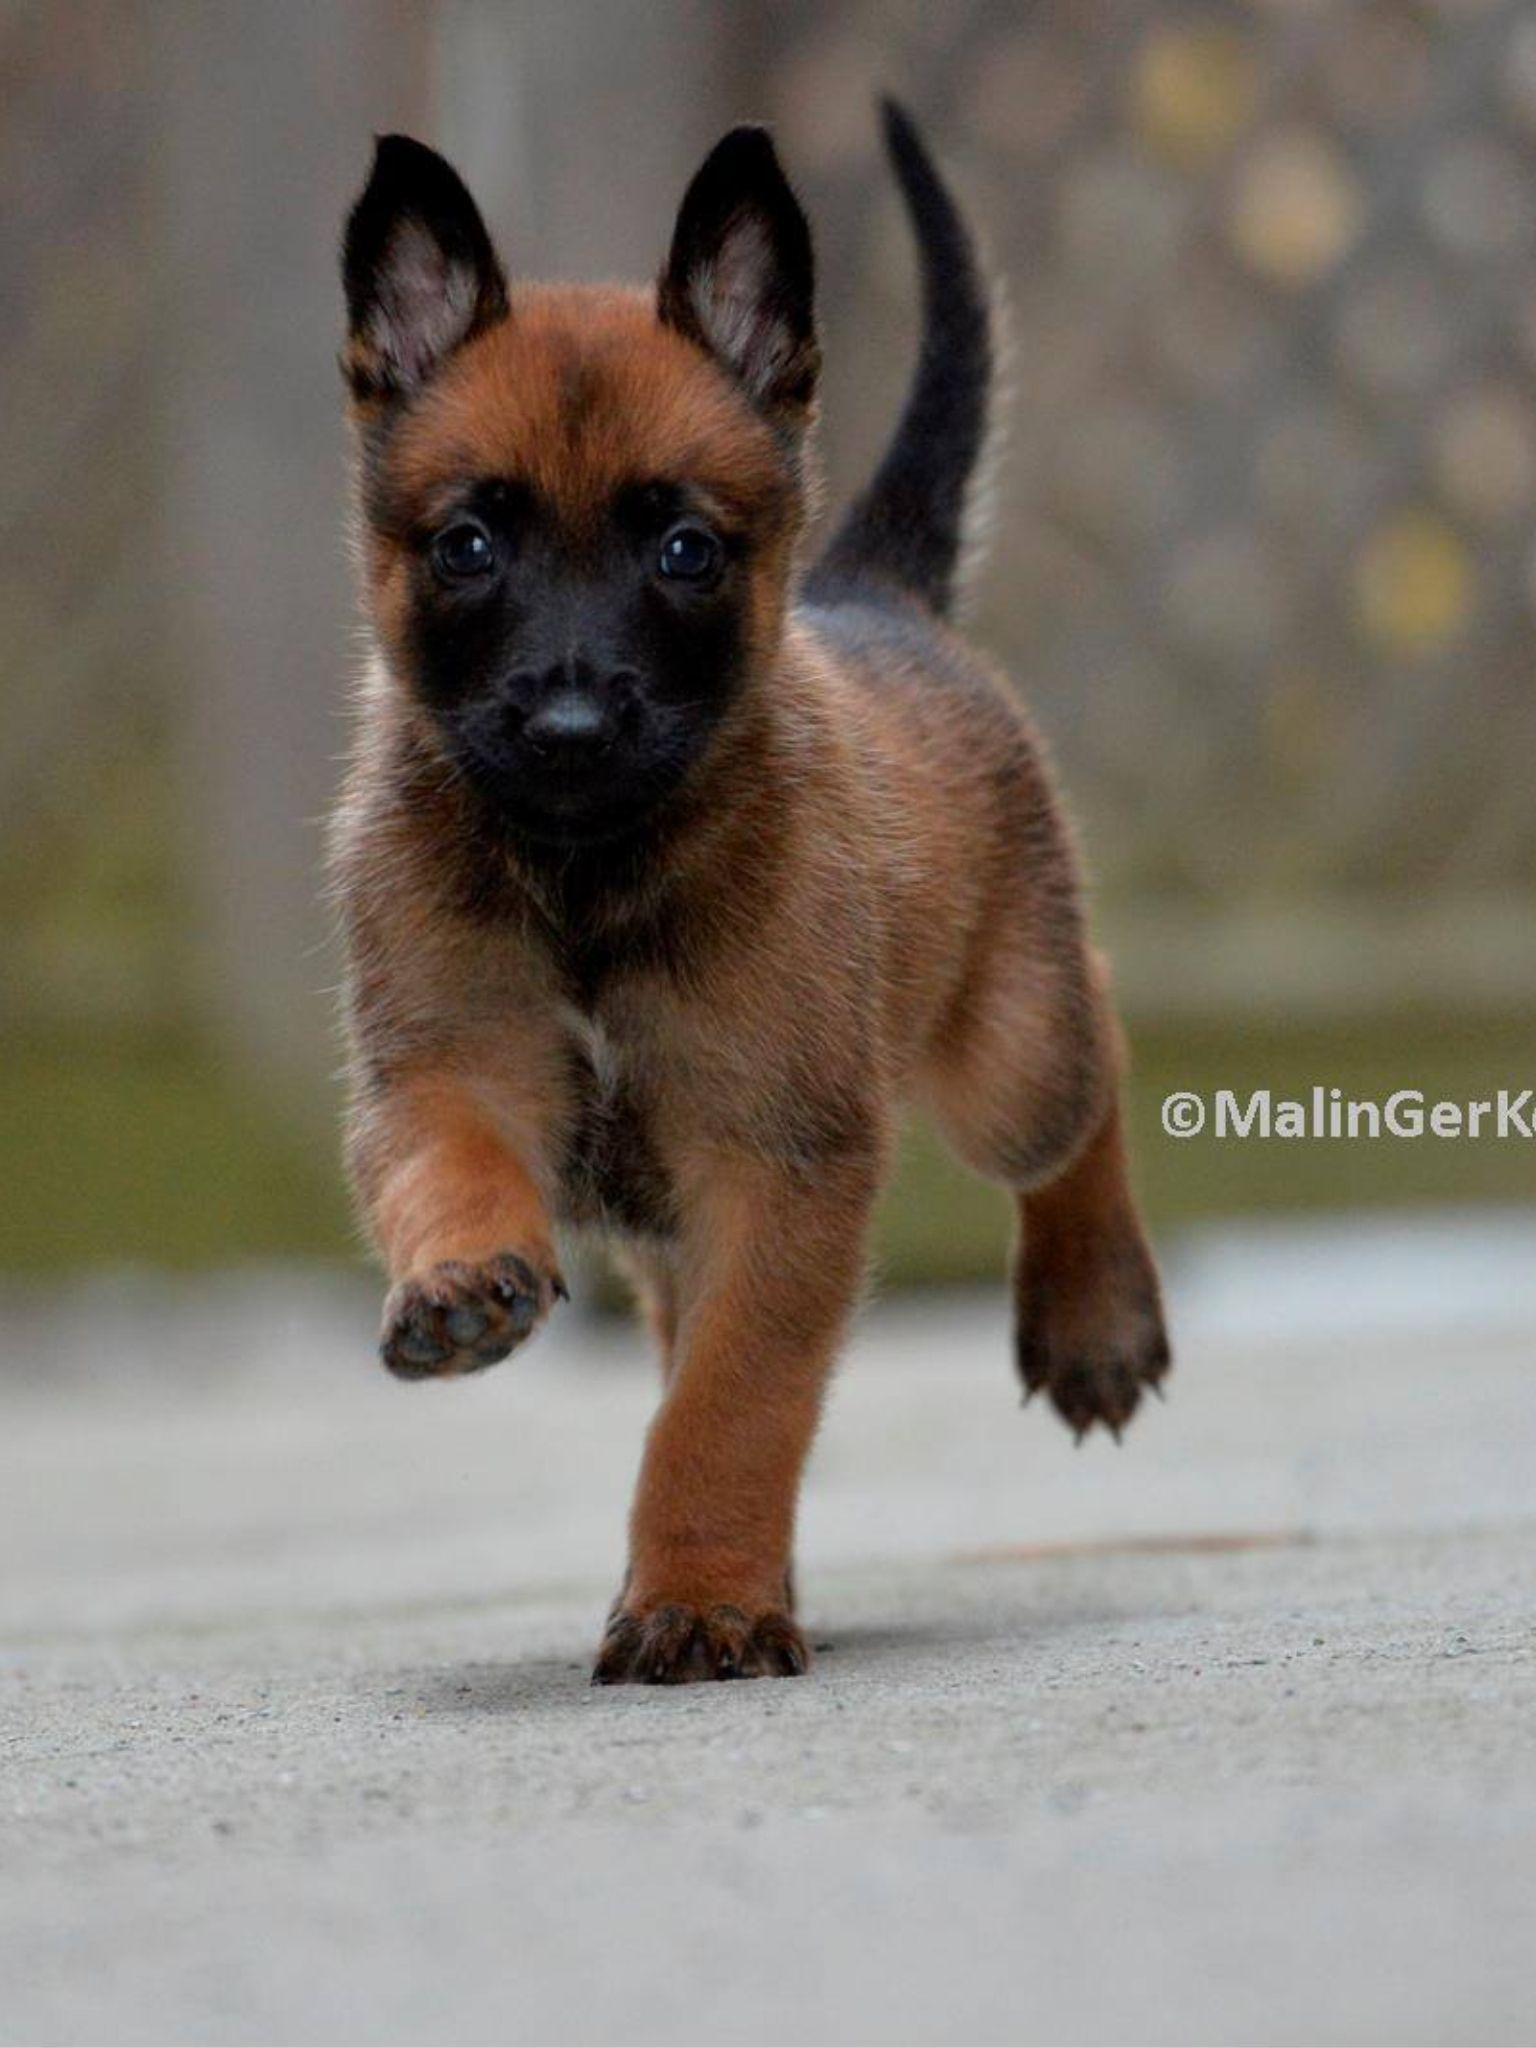 Belgian Malinois Puppy In 2020 Malinois Dog Malinois Puppies